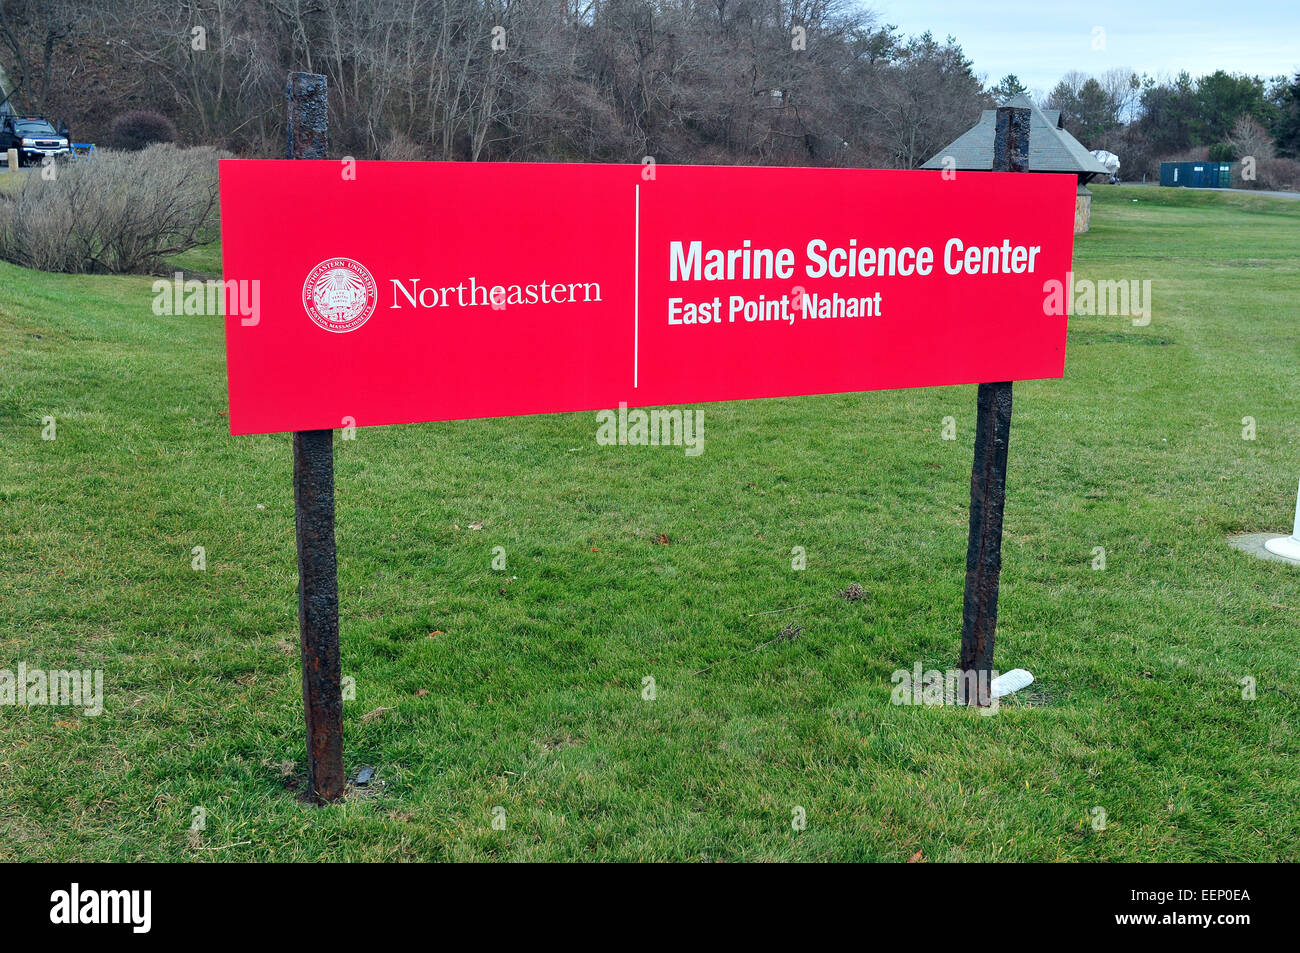 Sign at the entrance to Northeastern University Marine Science Center, East Point, Nahant, Mass. USA - Stock Image